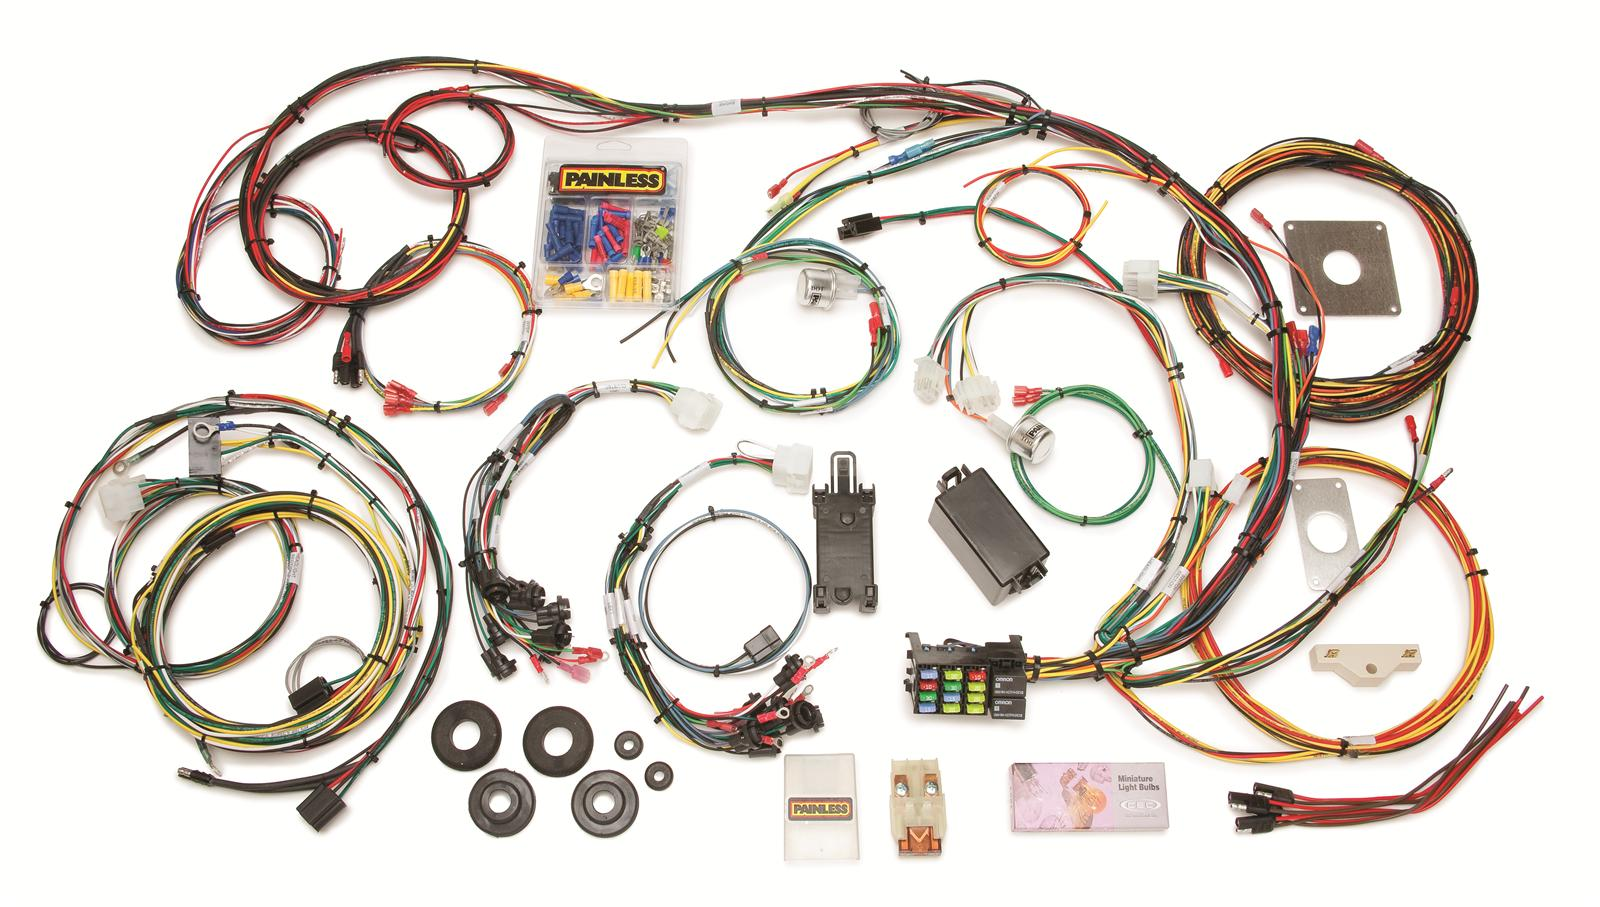 medium resolution of hight resolution of 65 mustang wire harness kit schema wiring diagram 65 mustang wiring harness diagram